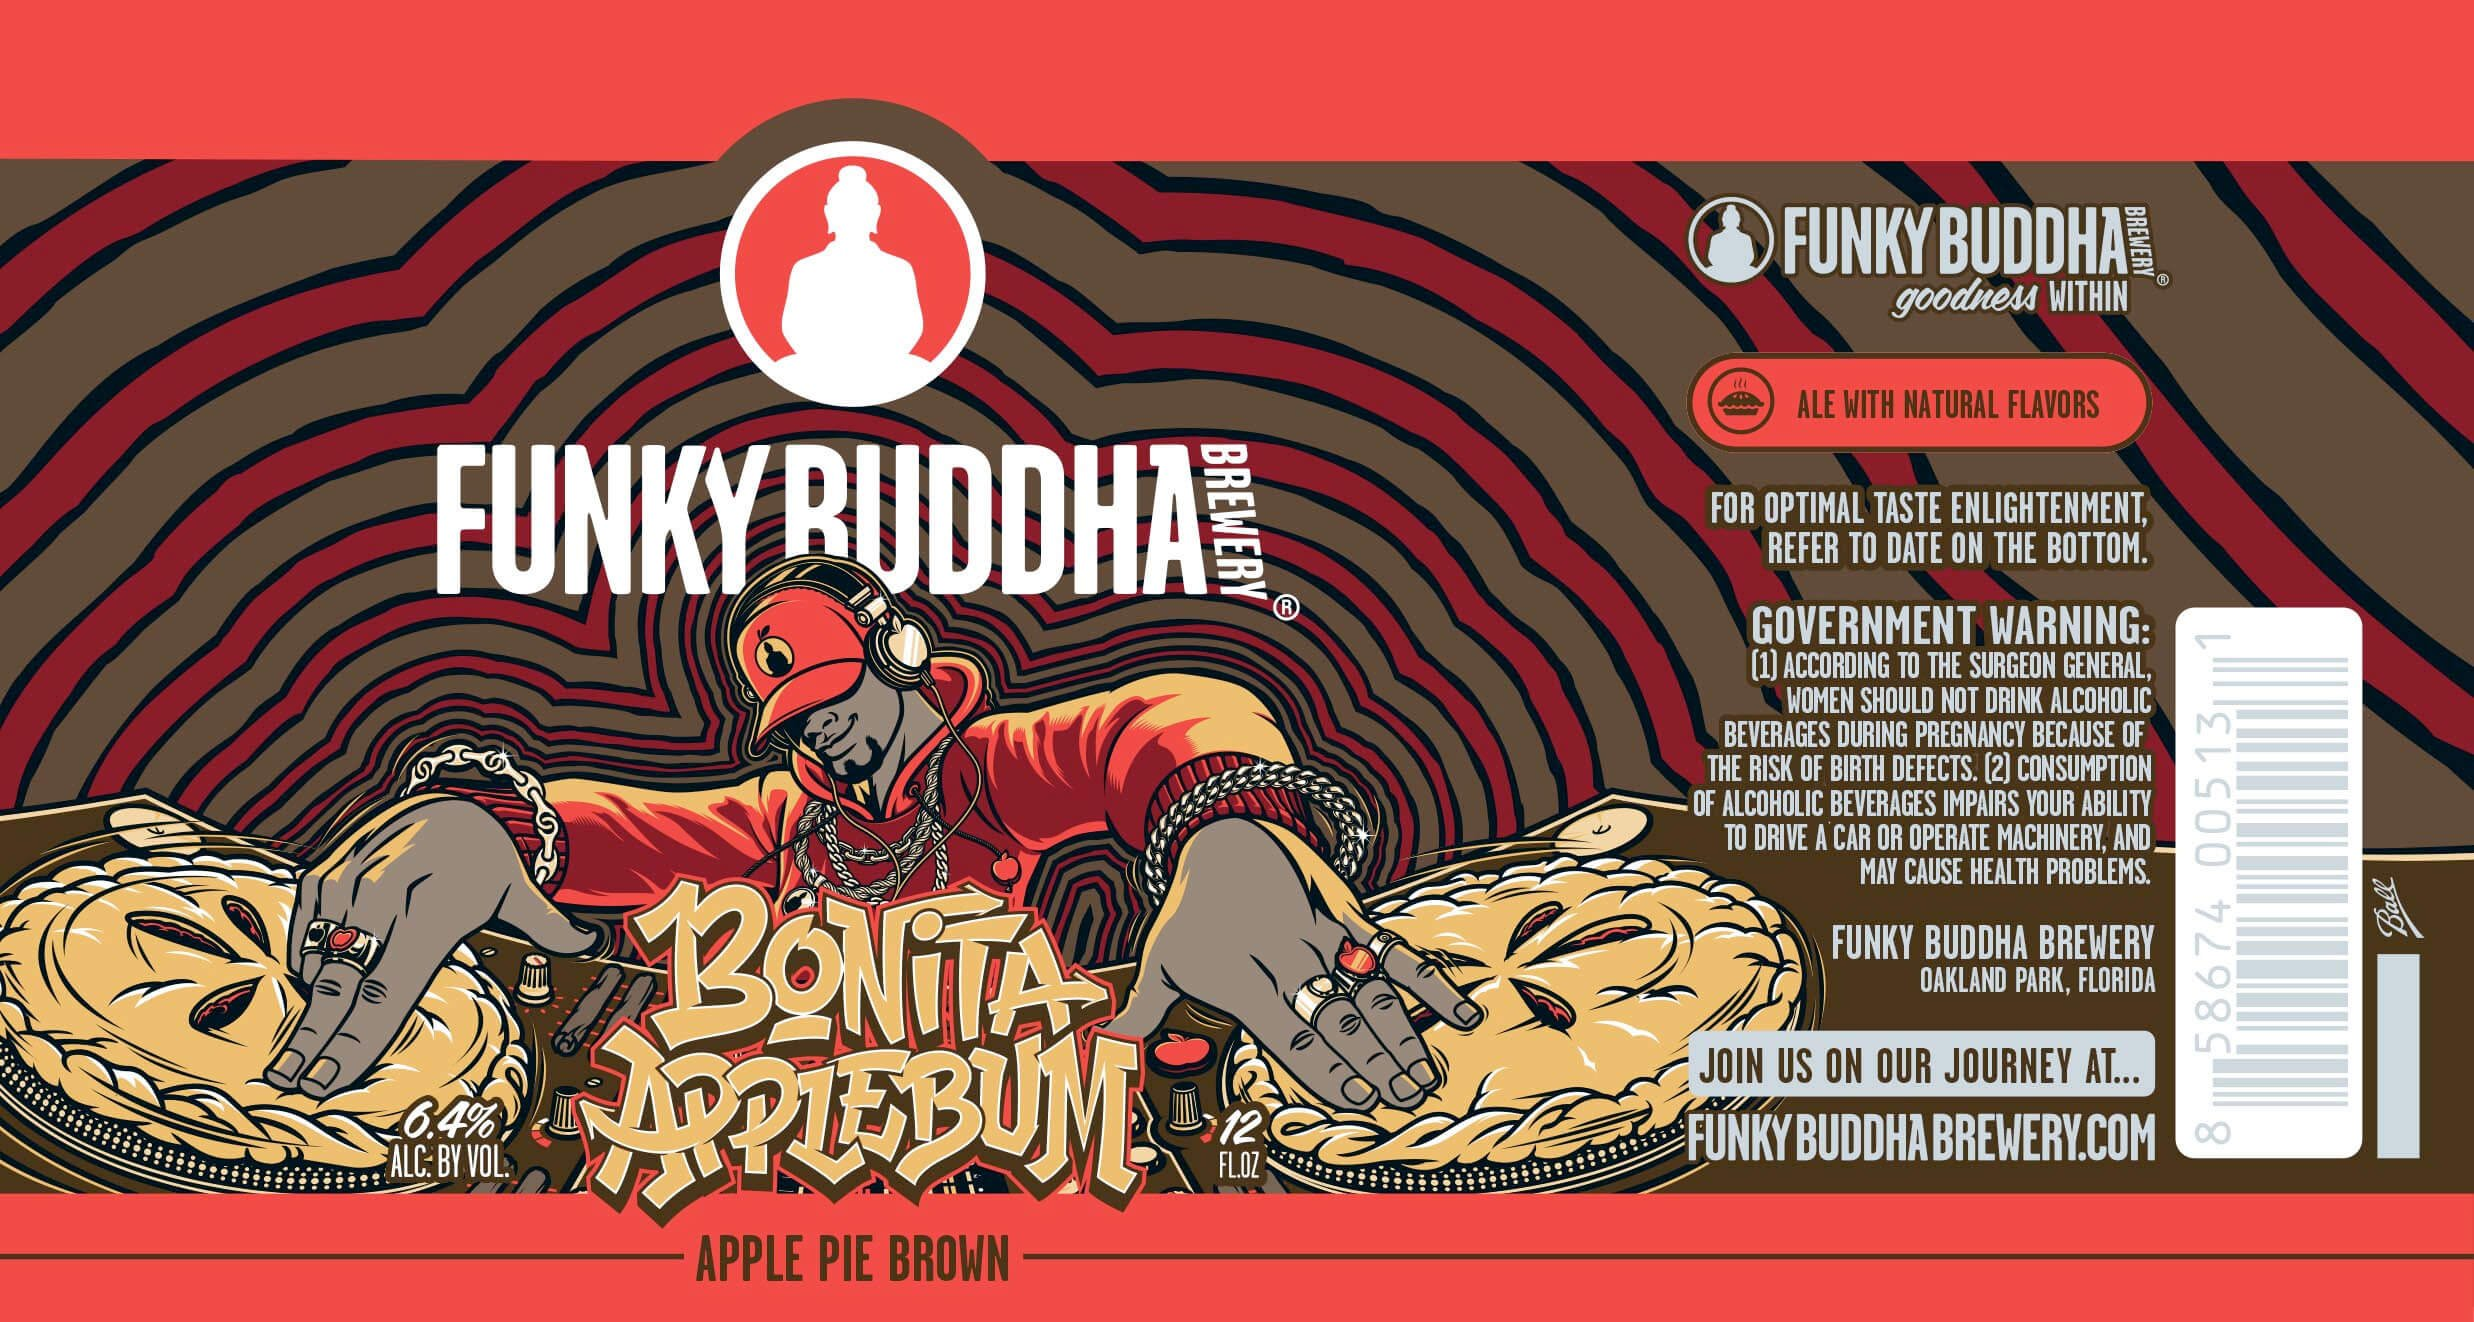 Label art for the Bonita Applebum by Funky Buddha Brewery